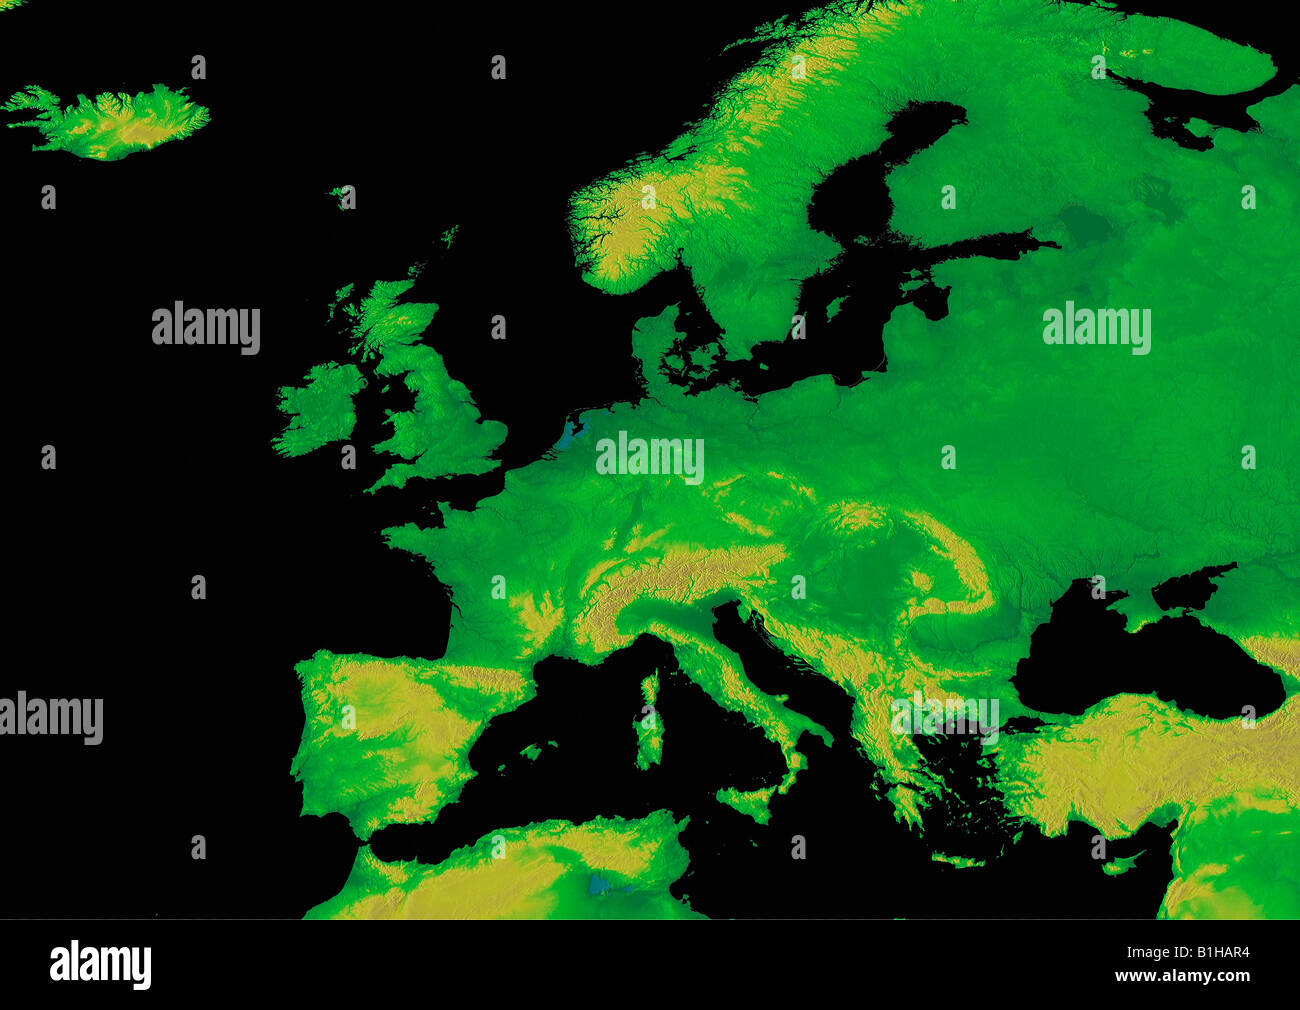 Digital Elevation Map Of Europe Earth From Space Stock Photo - Digital elevation map of the world